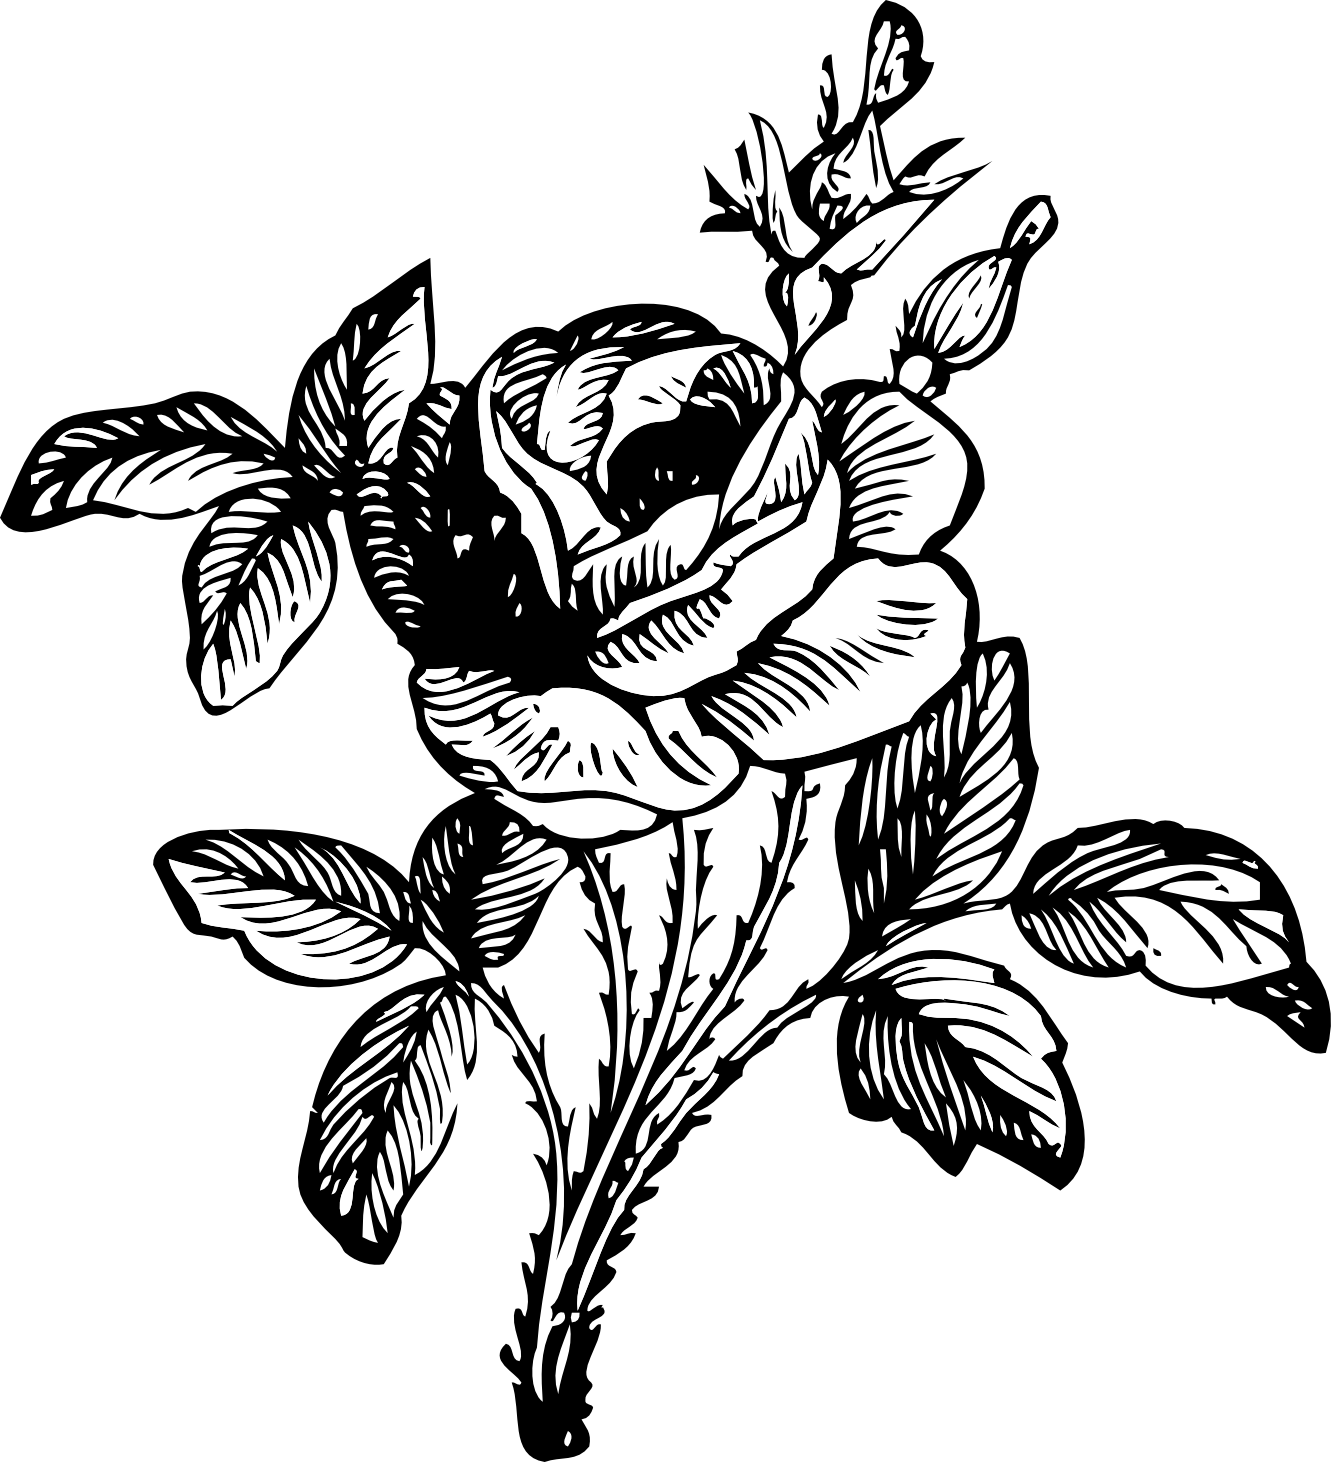 Rose bouquet clipart black and white svg free Rose black and white white rose bouquet clipart - WikiClipArt svg free